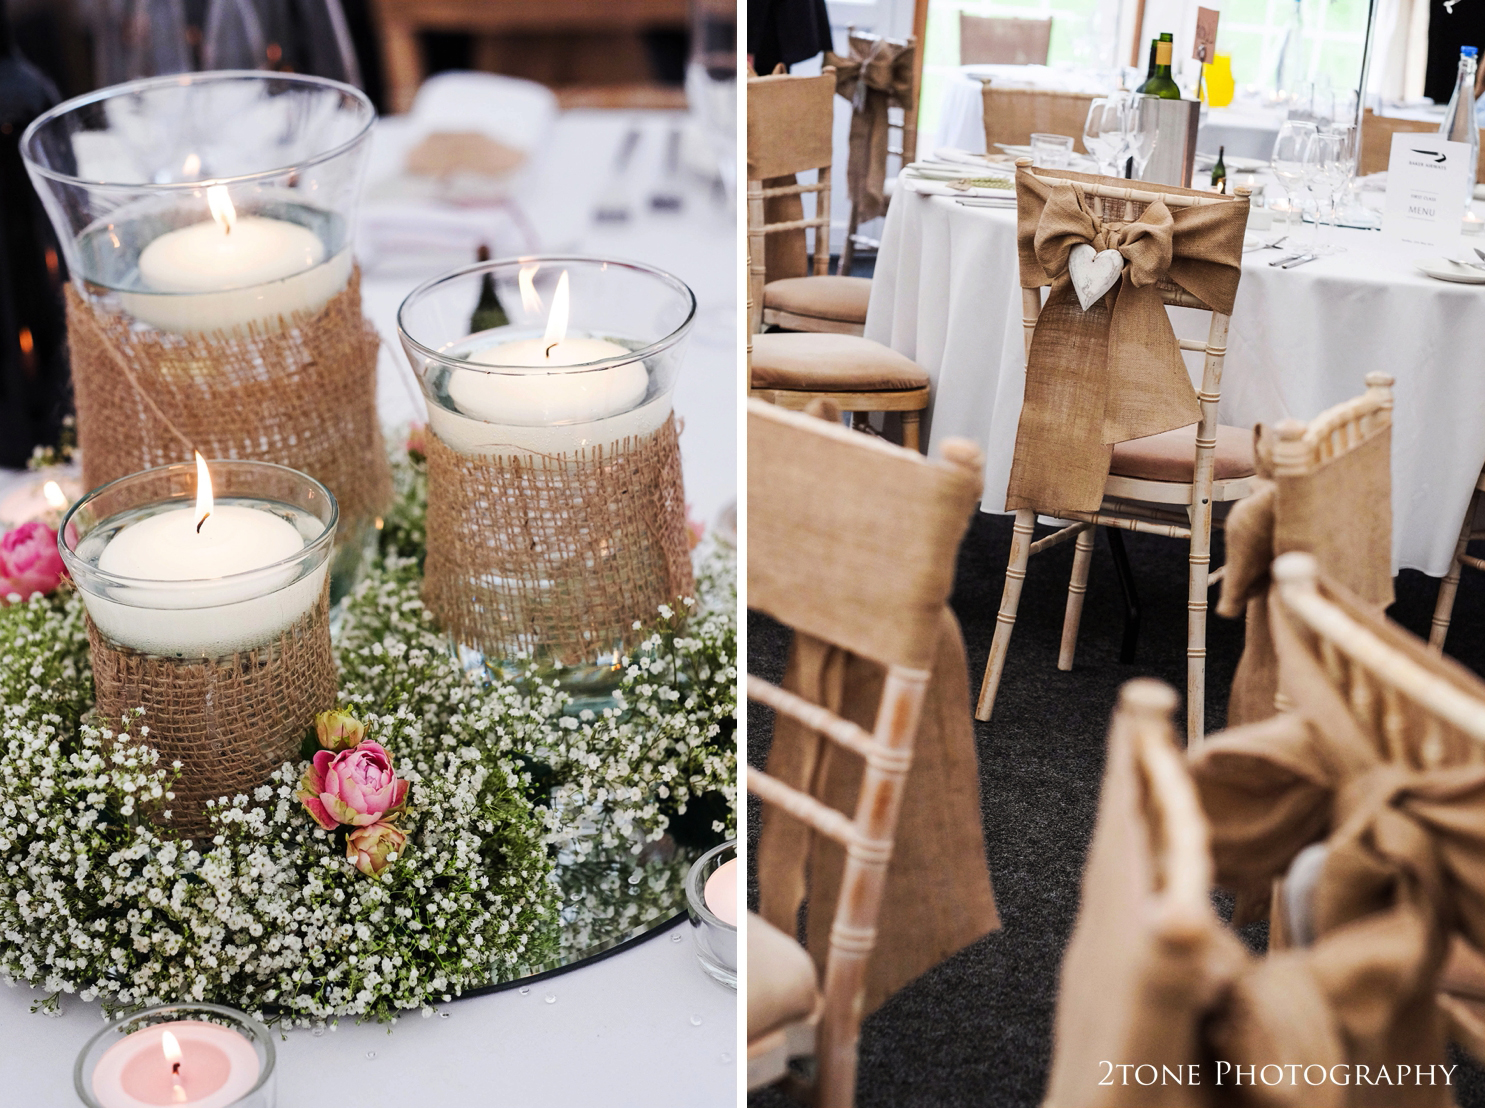 Sarah and Christian chose hessian and gypsophila table decorations and hessian chair sashes with cute carved wooden hearts.  Their table names were based upon the county's that they have visited together and their menu's were created to look like an airline menu - Baker airlines.